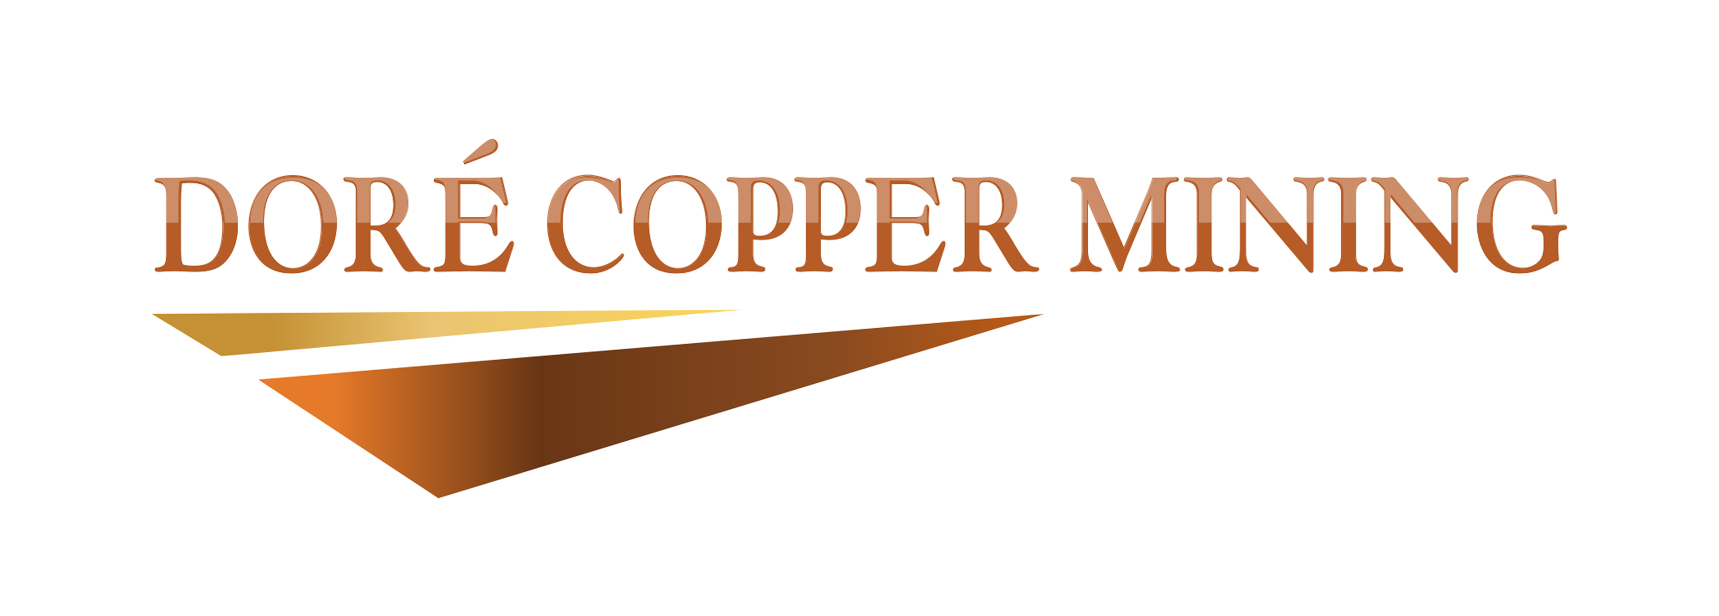 Doré Copper Intersects 7.0 Meters at 9.08% Copper, 0.41 g/t Gold and 30.64 g/t Silver at Corner Bay Extending the Deposit Along Strike and Down Plunge (TW approx. 4